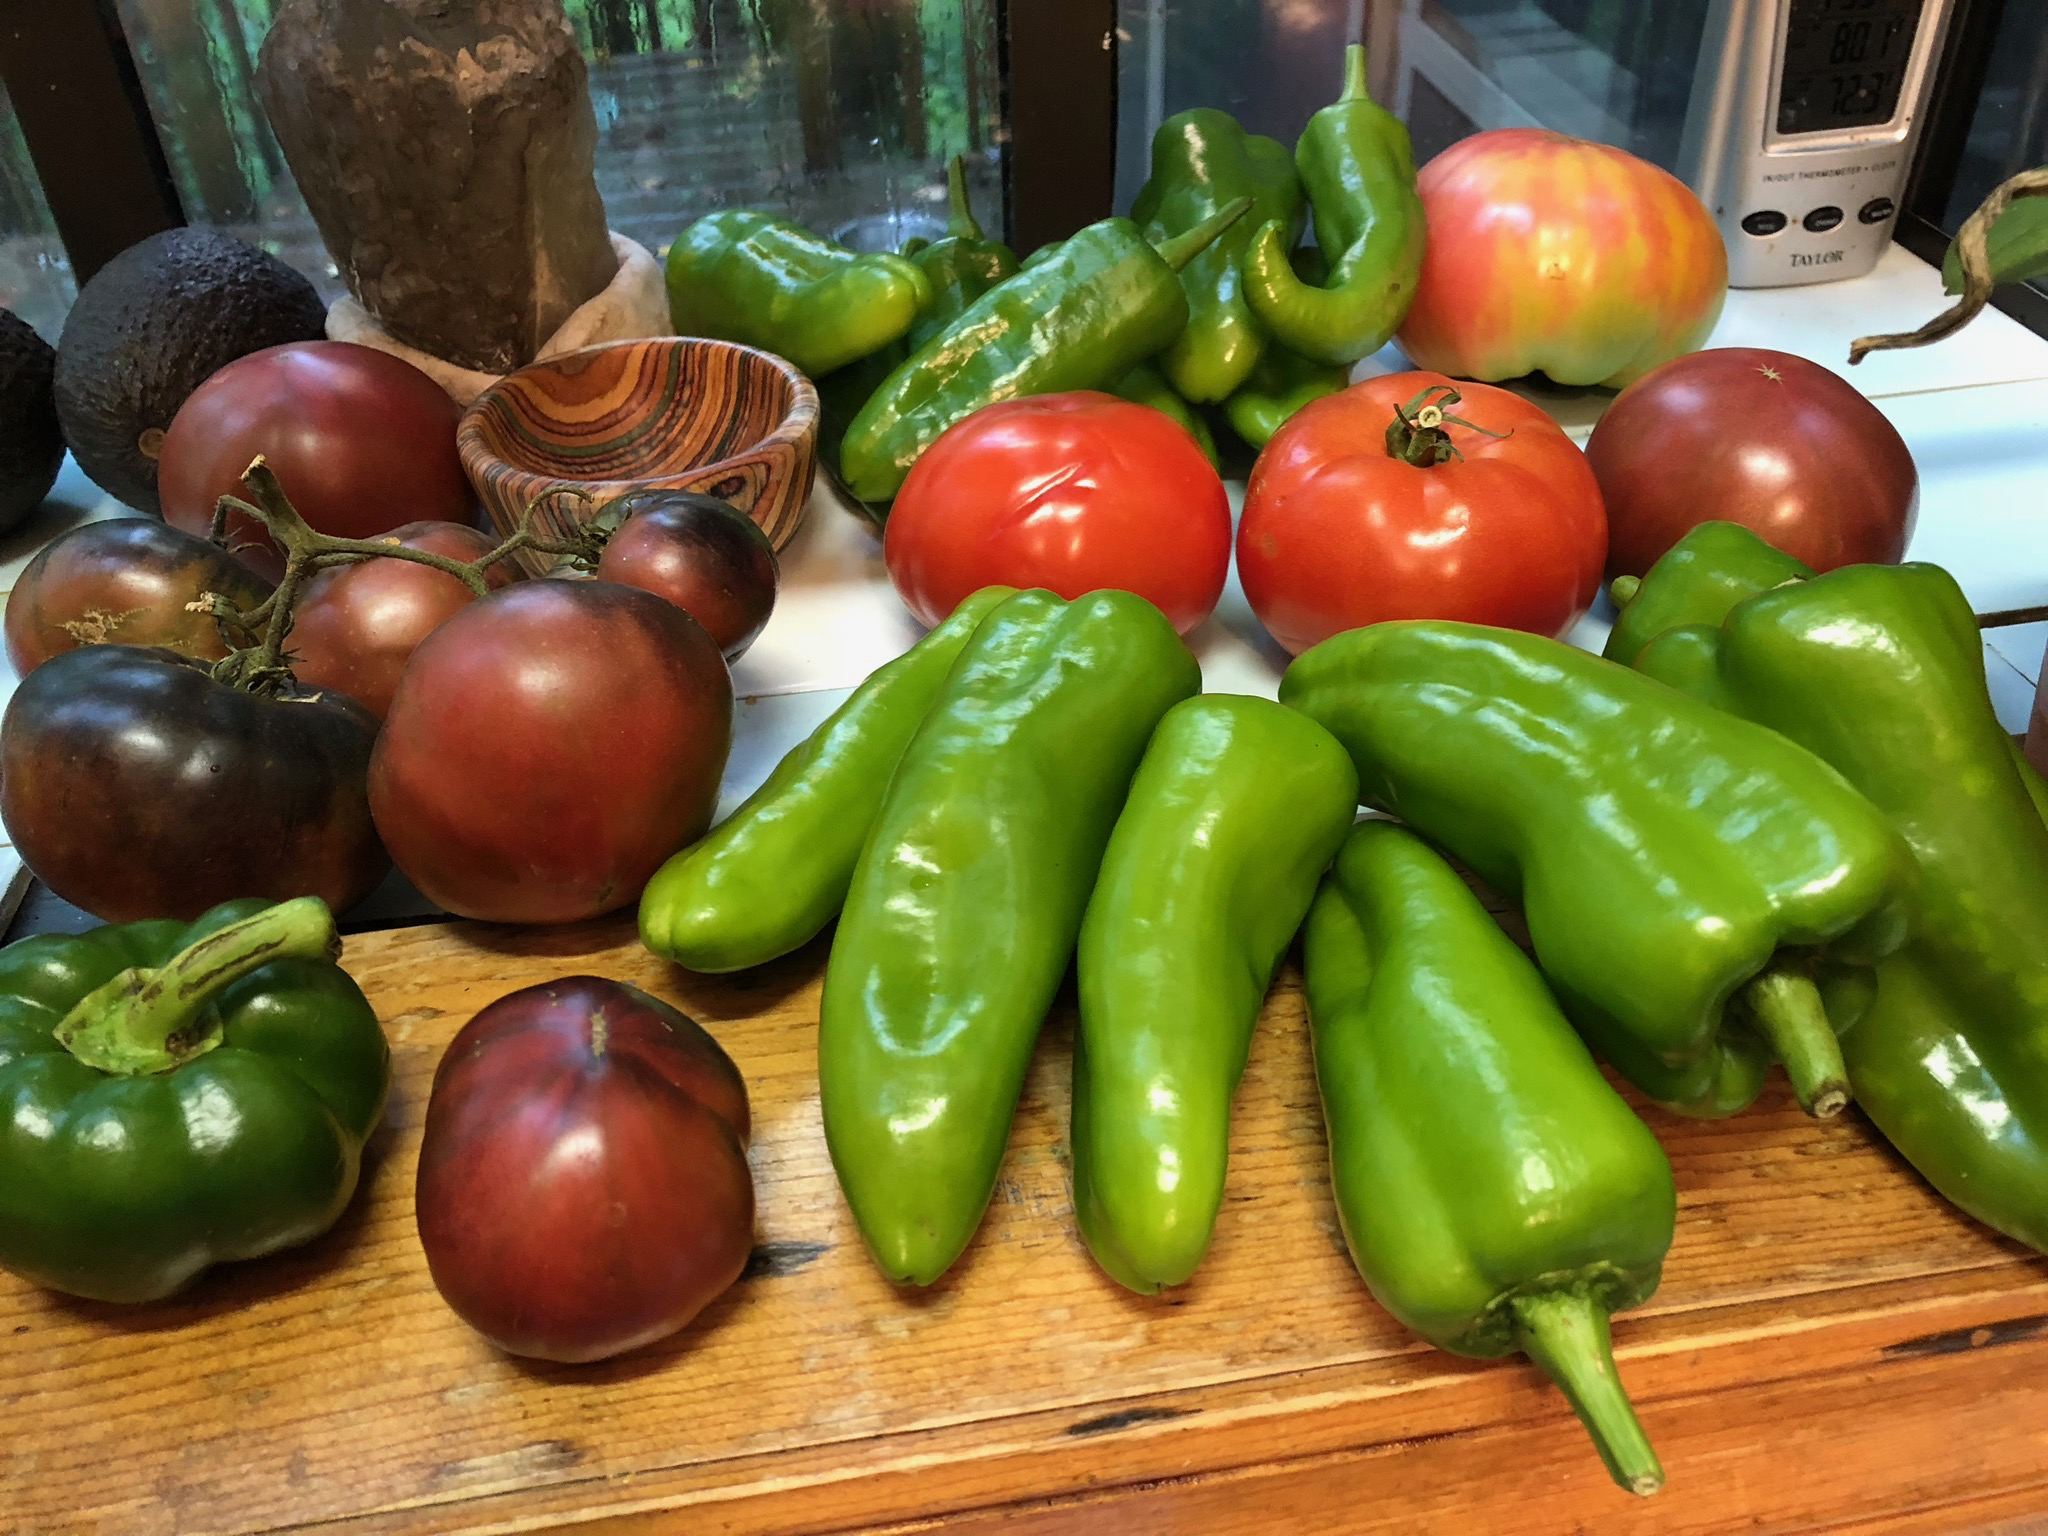 green marconi peppers, black beauty tomatoes